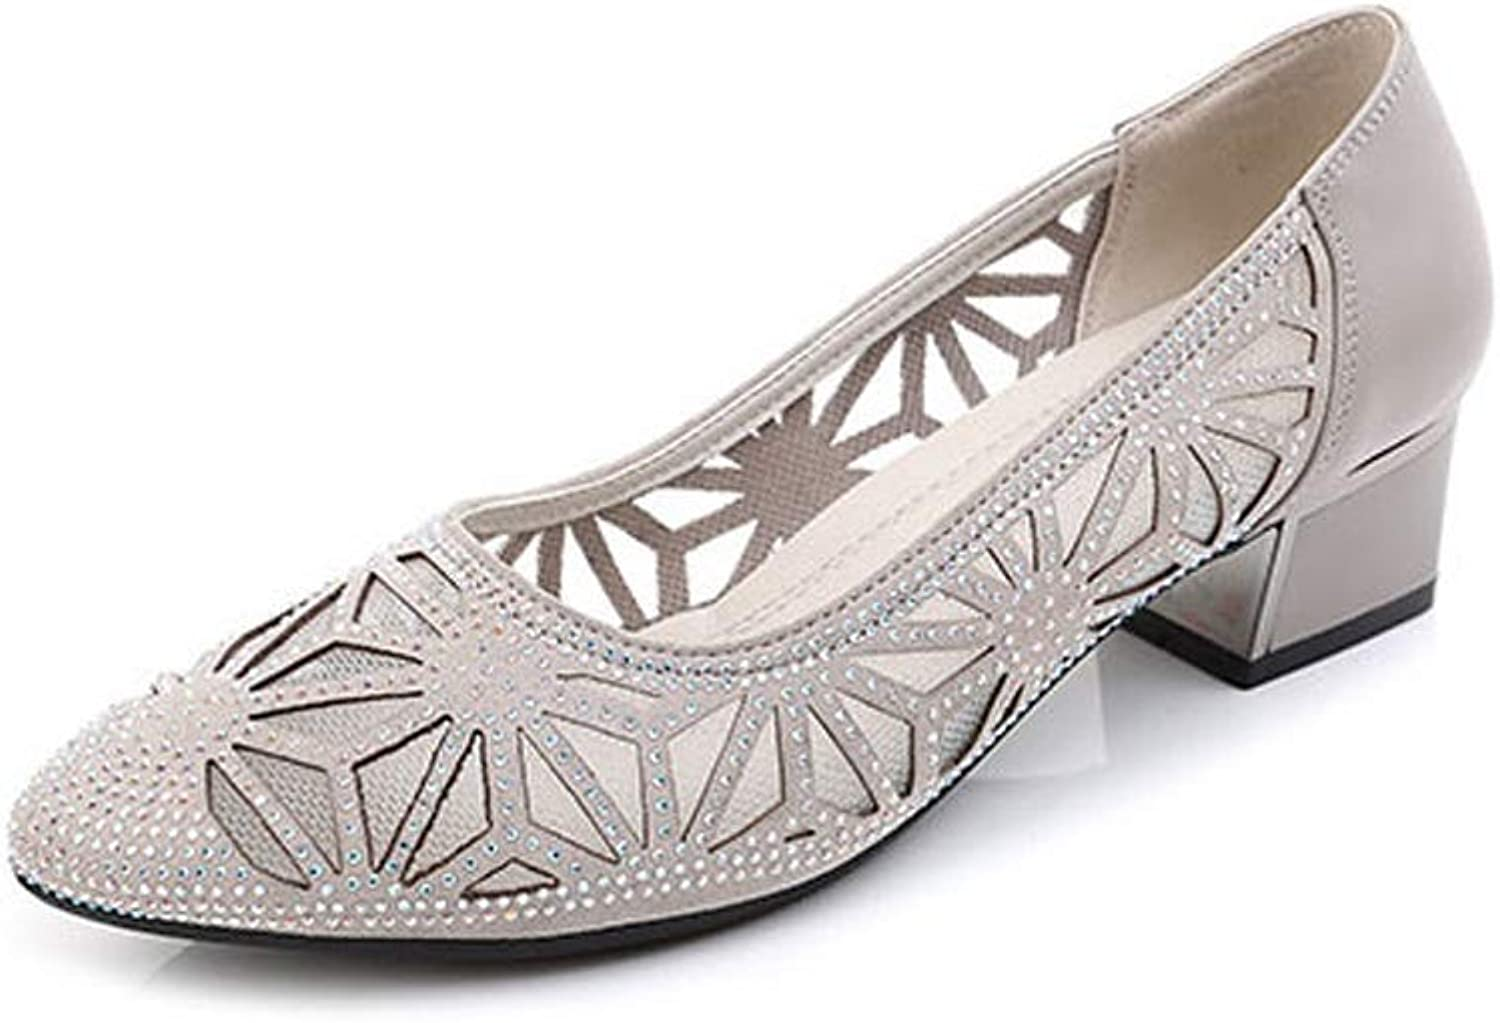 LANSEL Single shoes Spring and Autumn Thick with Hollow Mesh Rhinestones Breathable Women's shoes